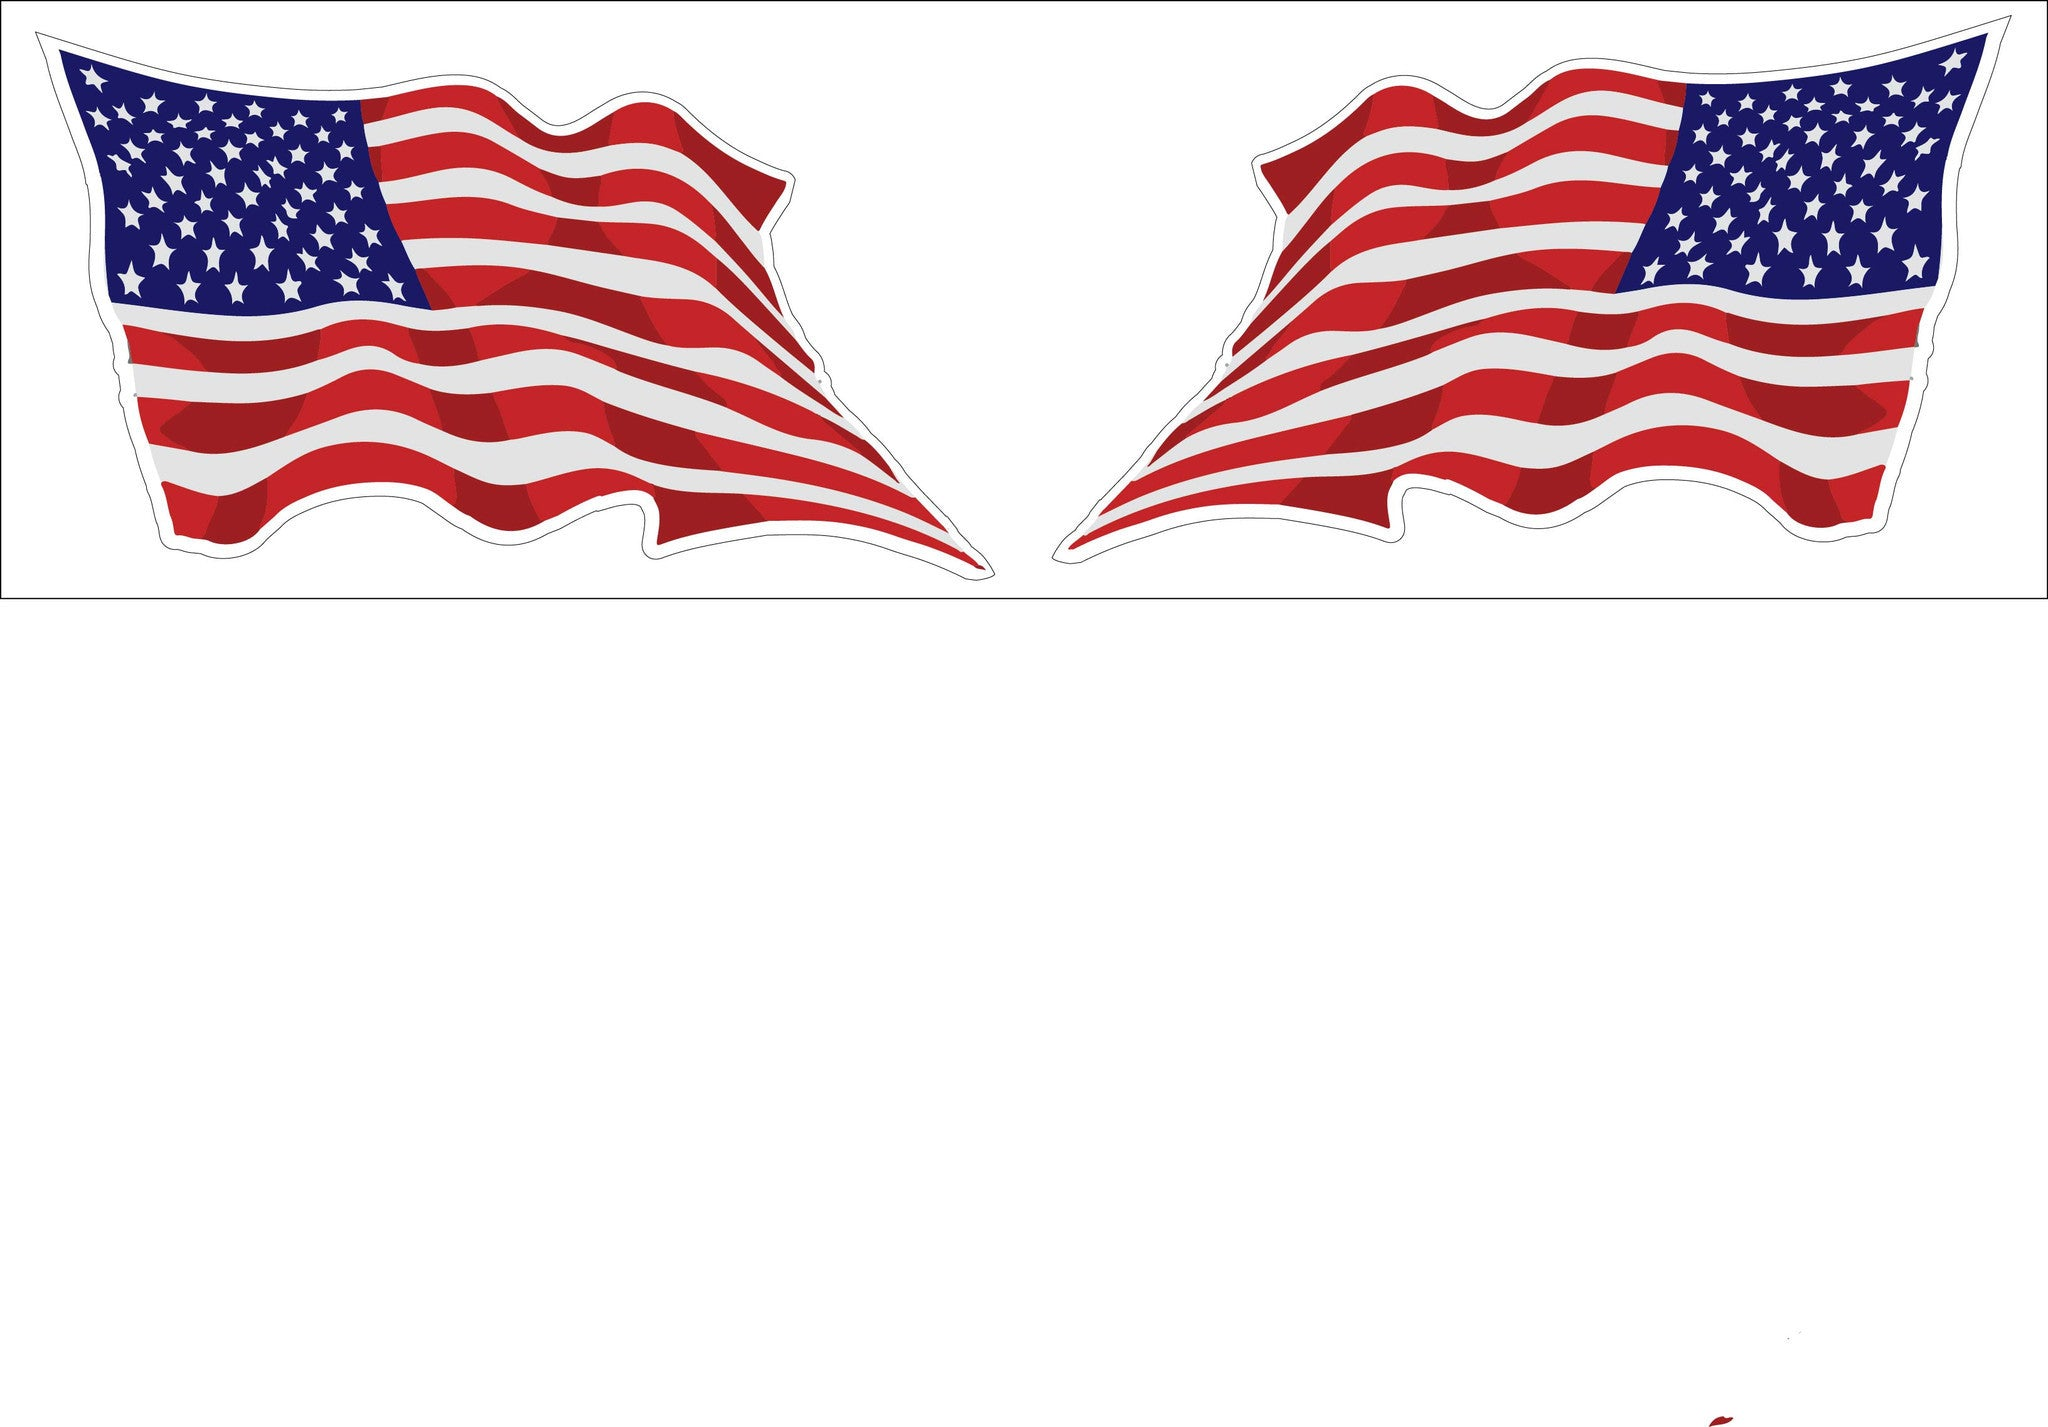 Motor Cycle Decal Sticker United States Wavy Flag 2 Pack Decal Sticker Buy  2 Packs Get 3rd Pack Free Shipping